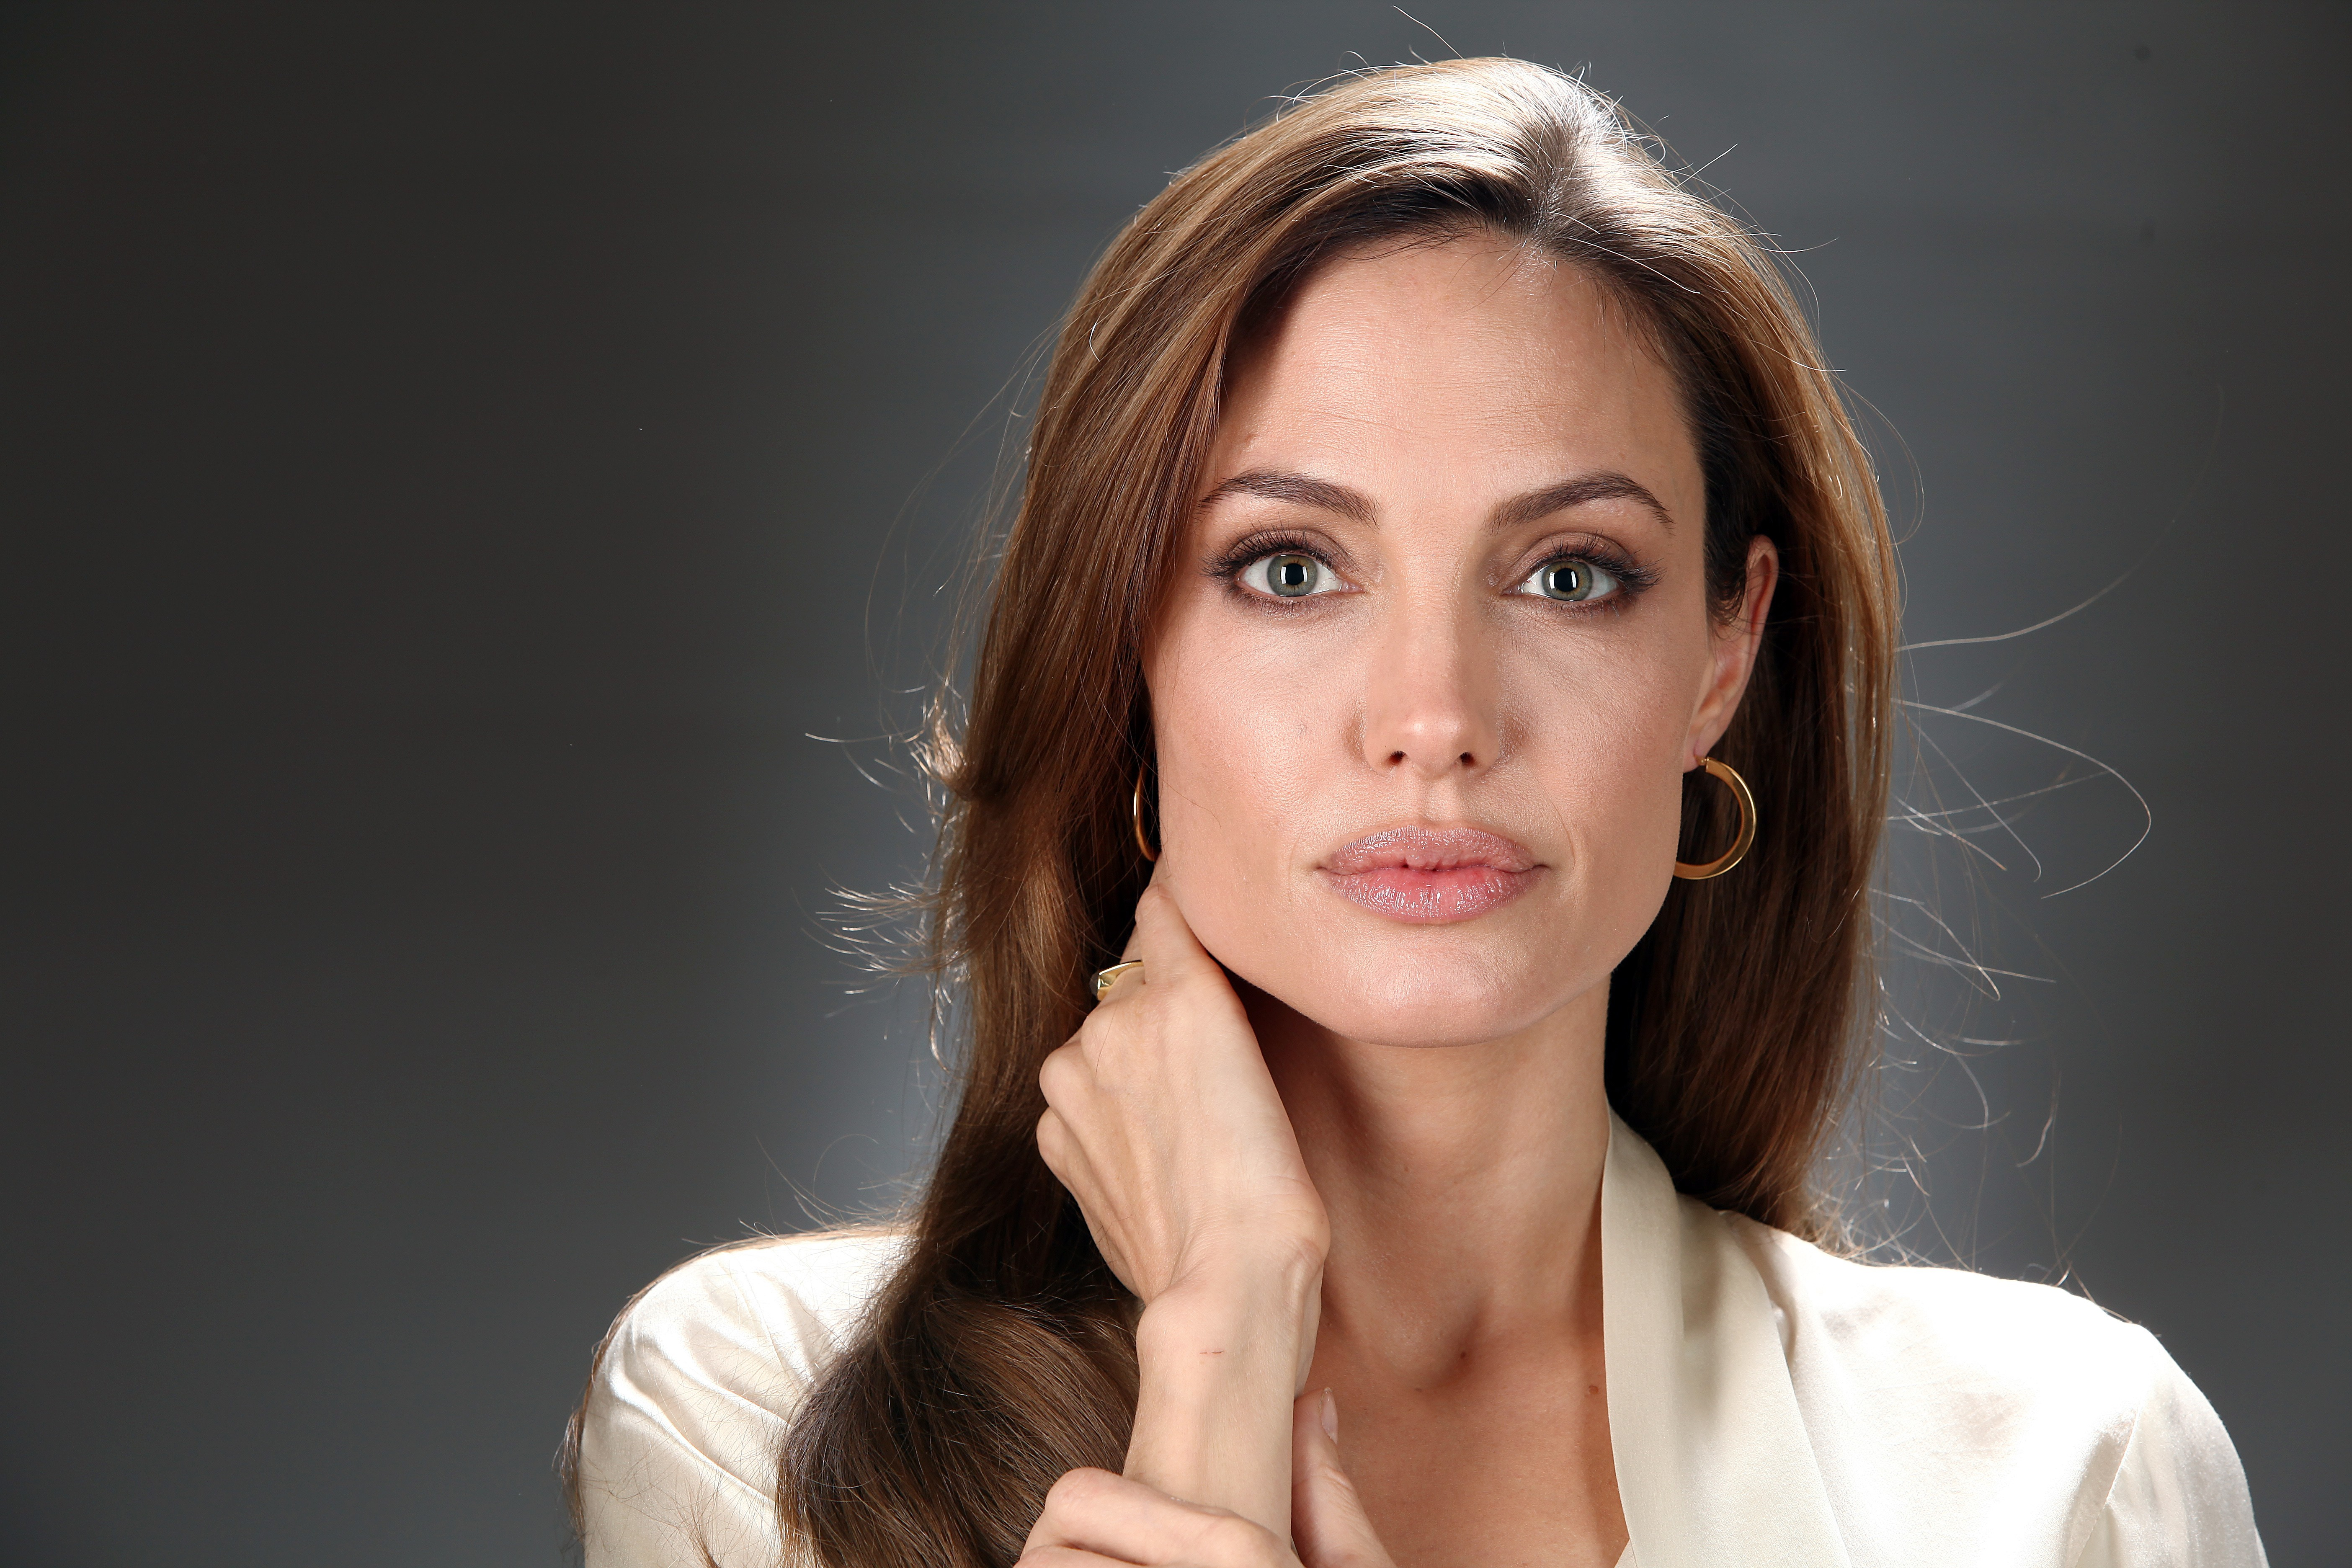 http://mad.tv/wp-content/uploads/2016/09/Angelina-Jolie-Net-Worth.jpg